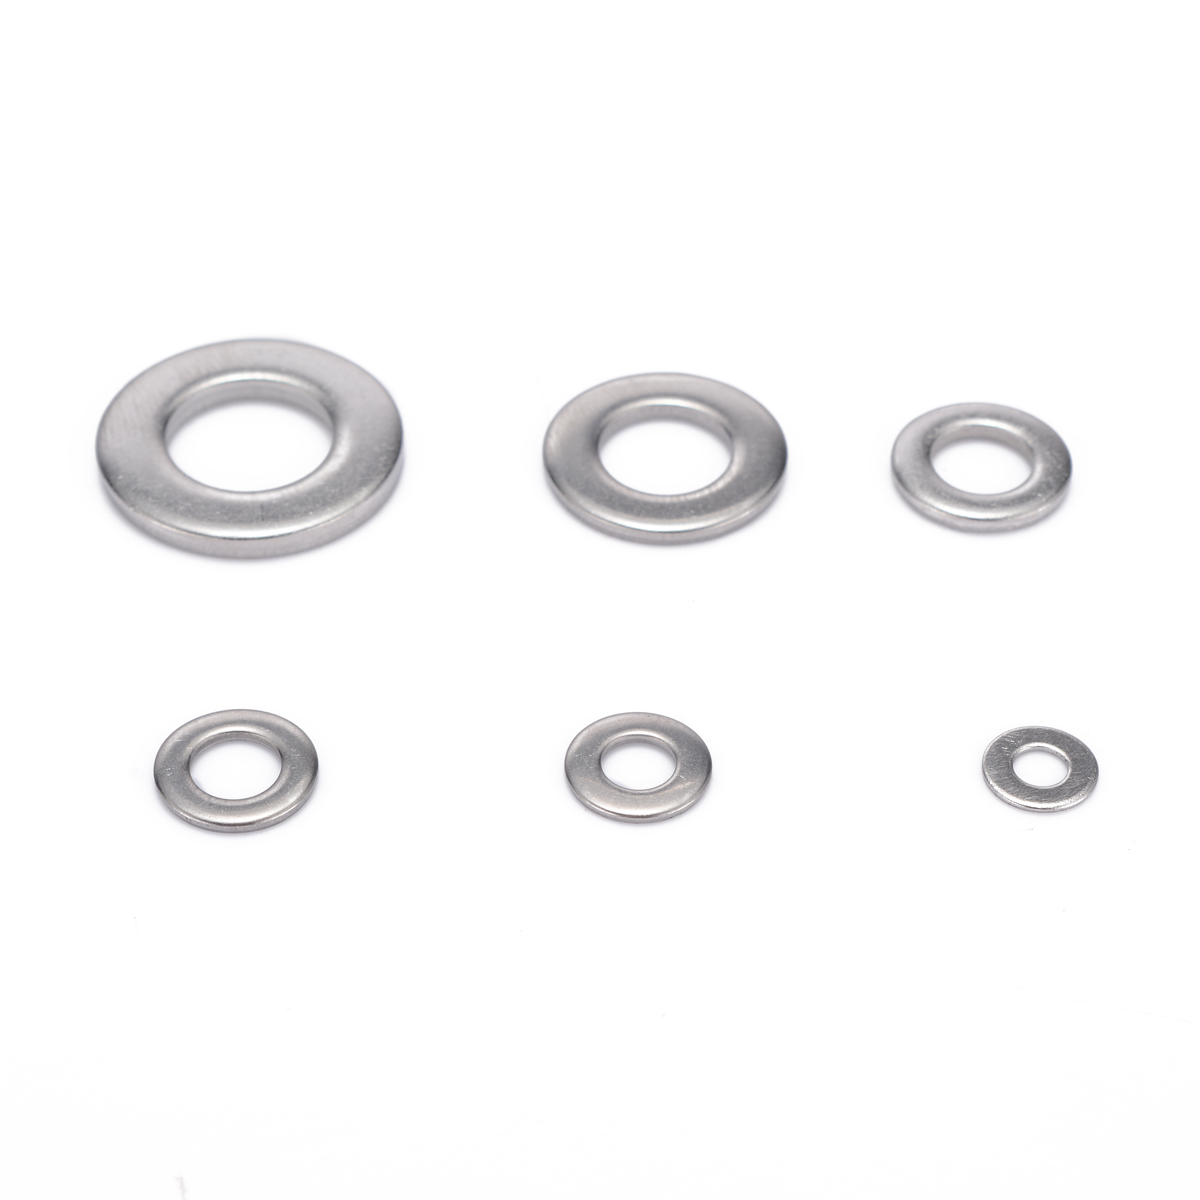 105pcs 304 Silver Stainless Steel Washers M3 M4 M5 M6 M8 M10 Metric Flat Washer Kit For Electronic Instruments in Washers from Home Improvement